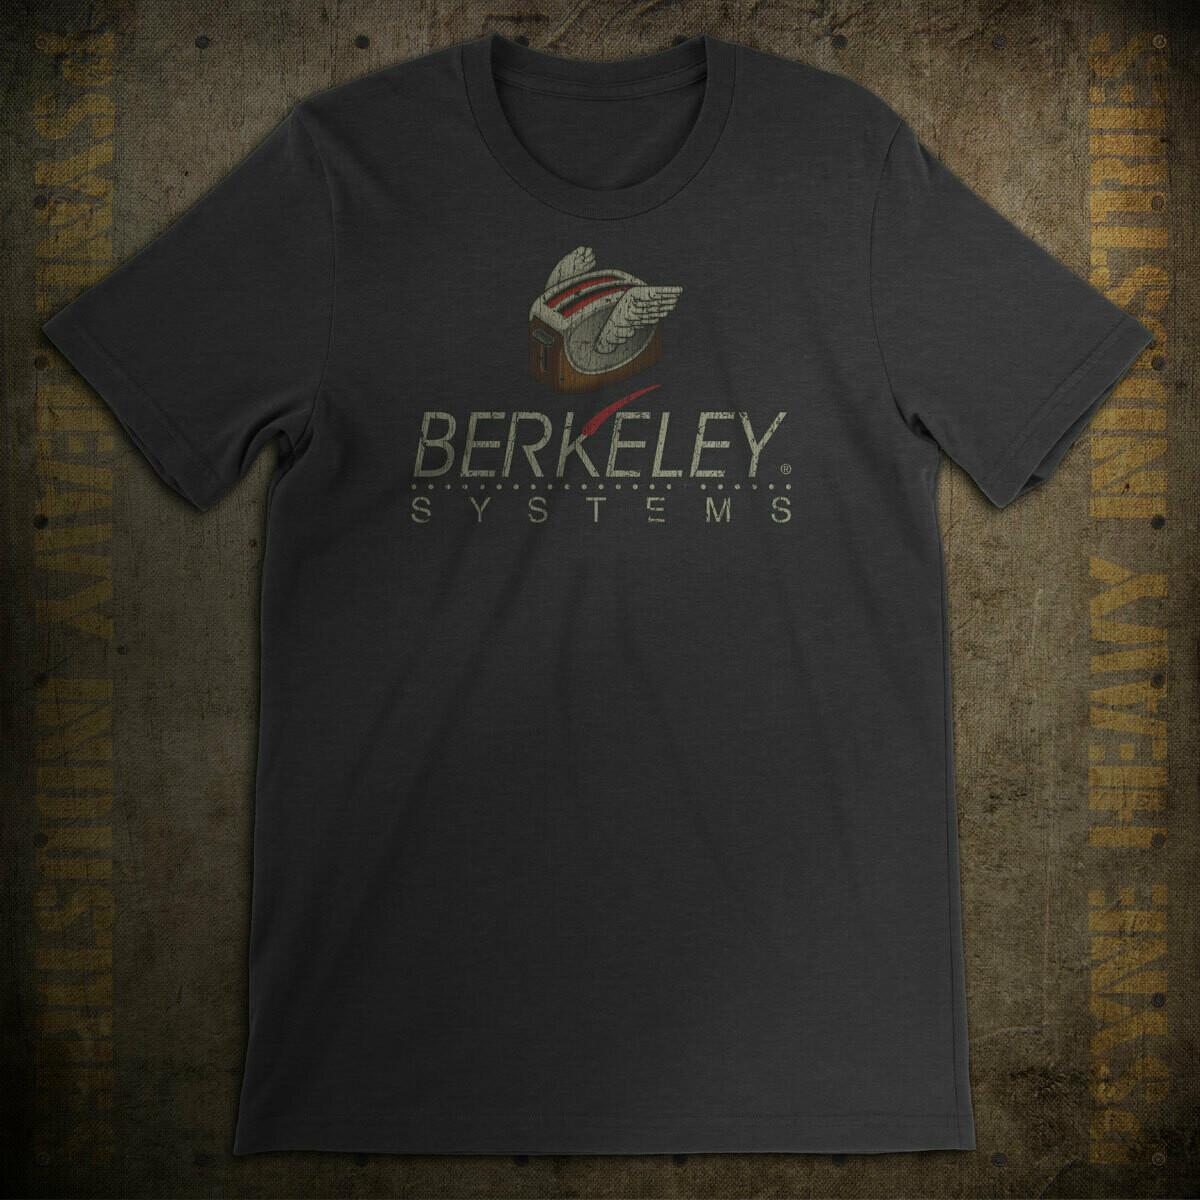 Berkeley Systems Vintage Flying Toaster T-Shirt